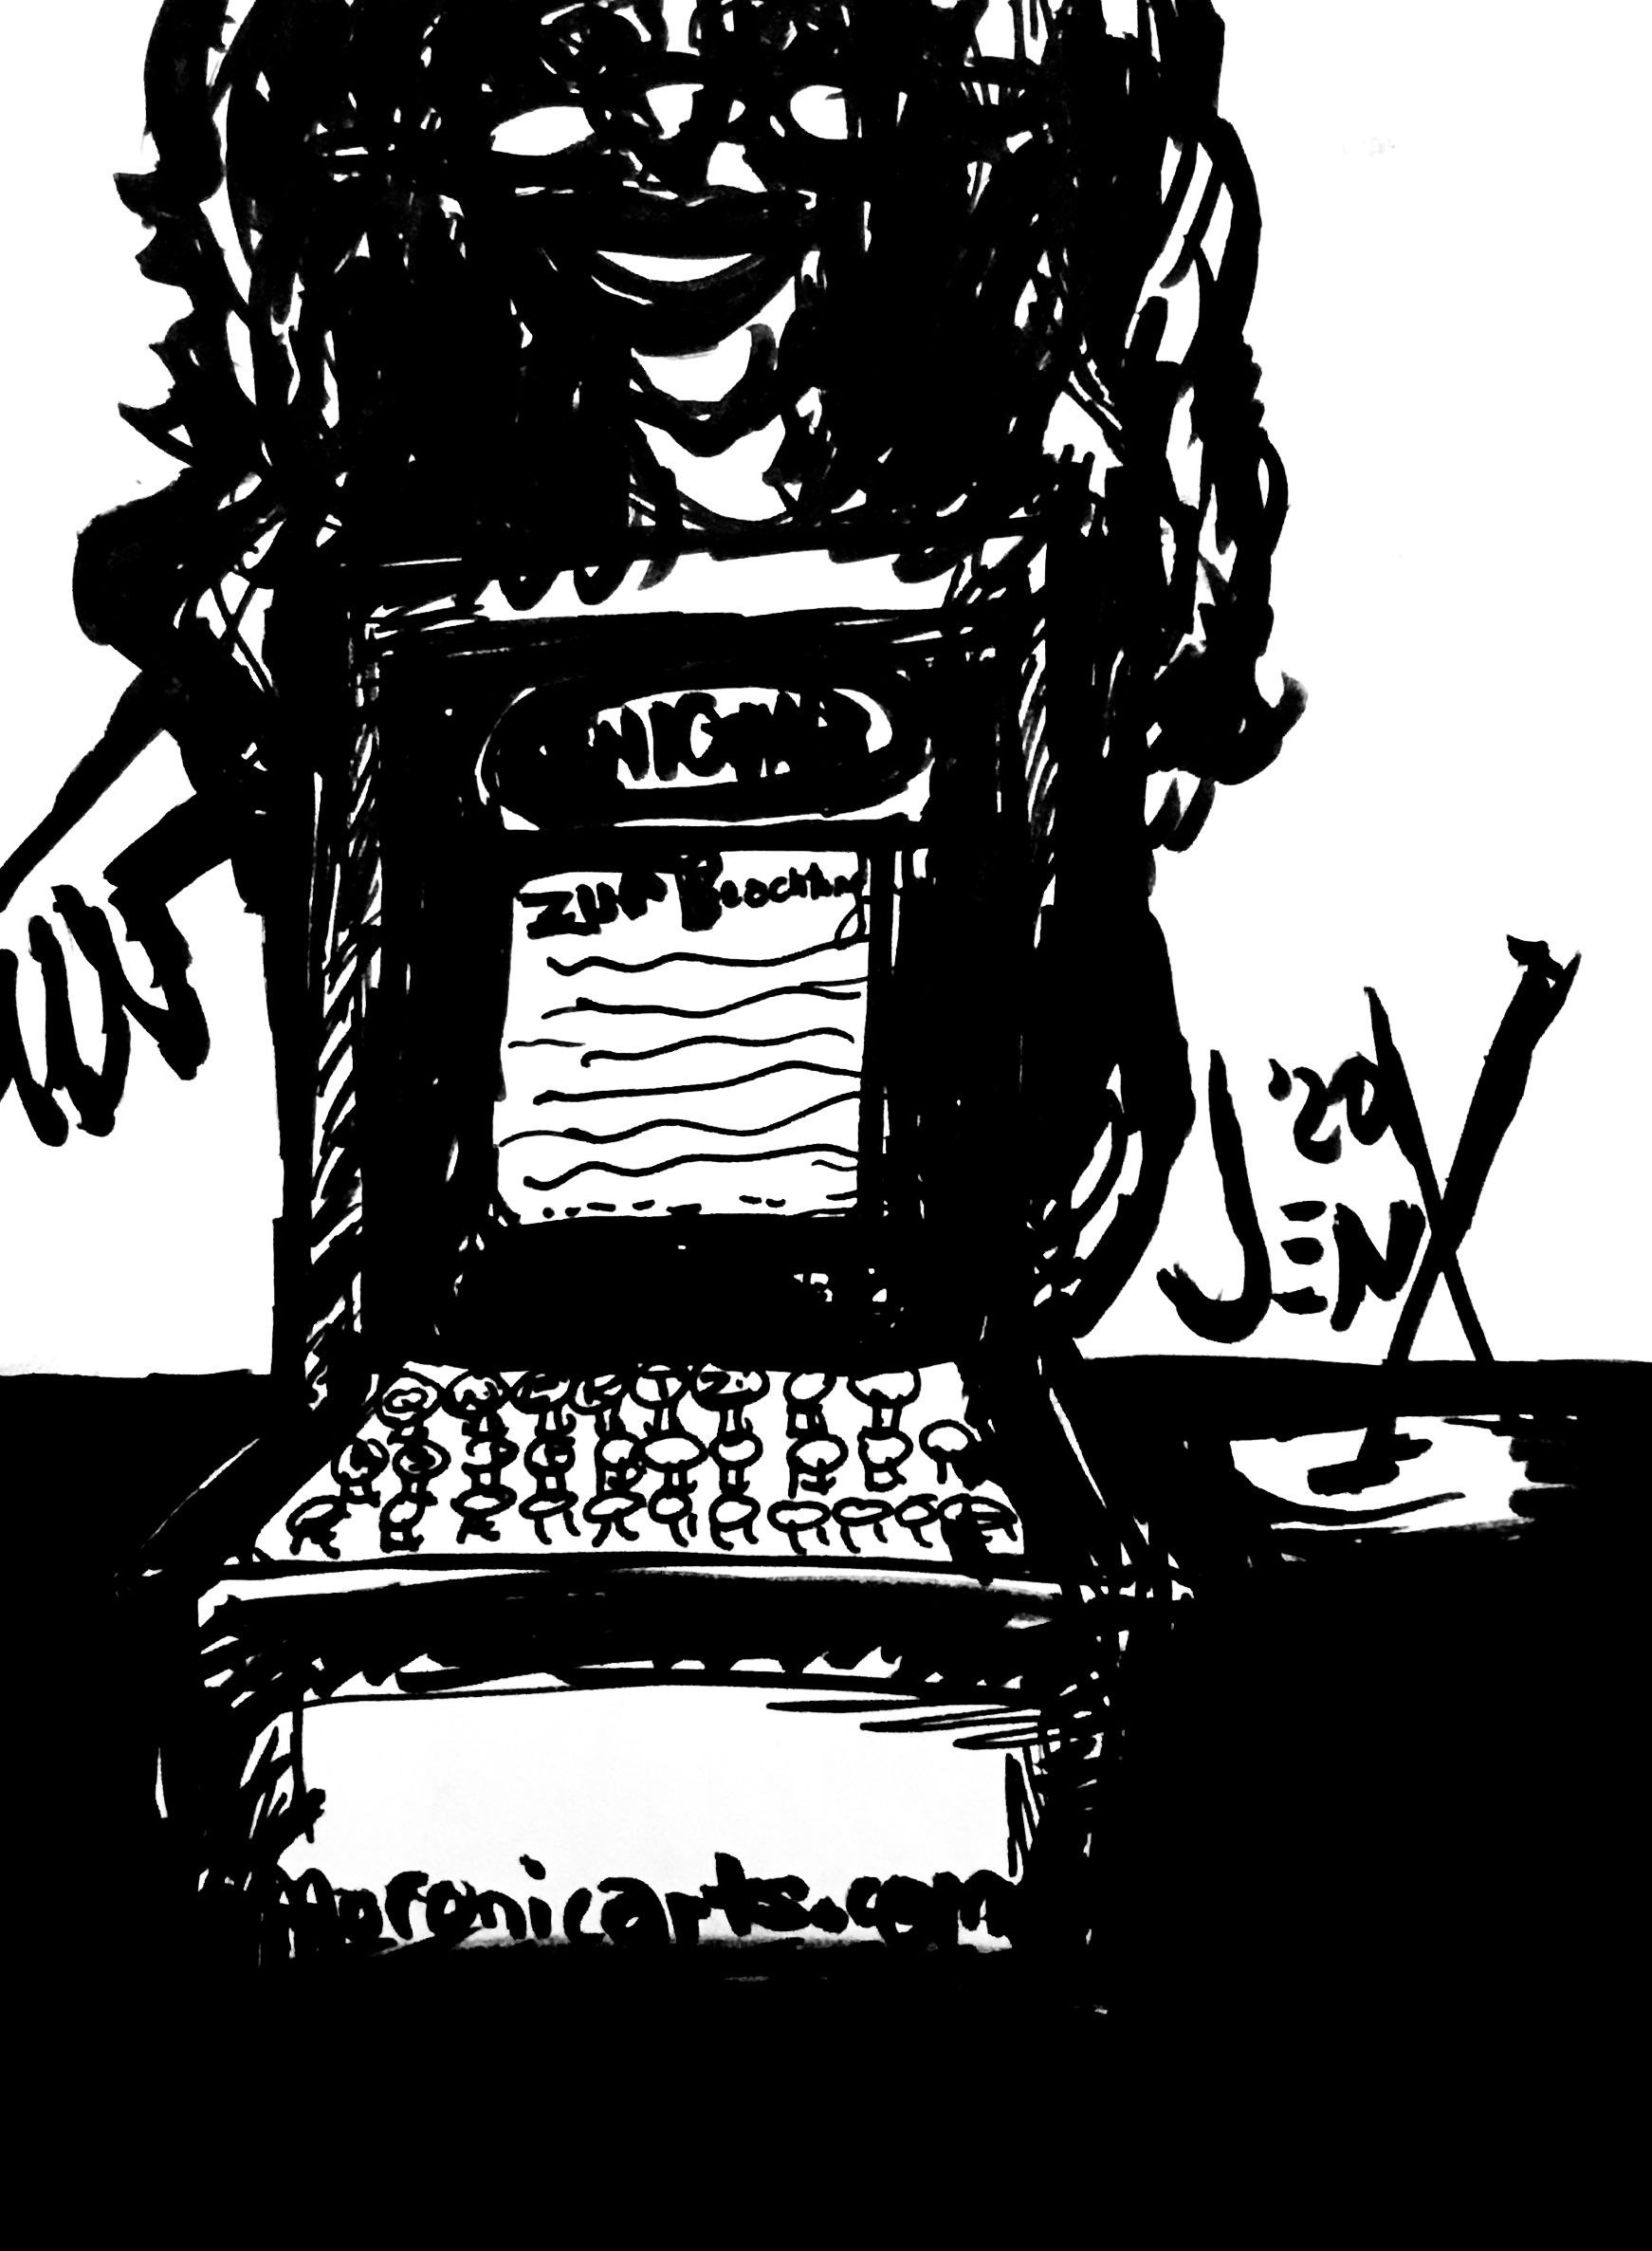 A black-and-white carton of a skinny blonde woman gesturing behind an Enigma Machine setting on a table.